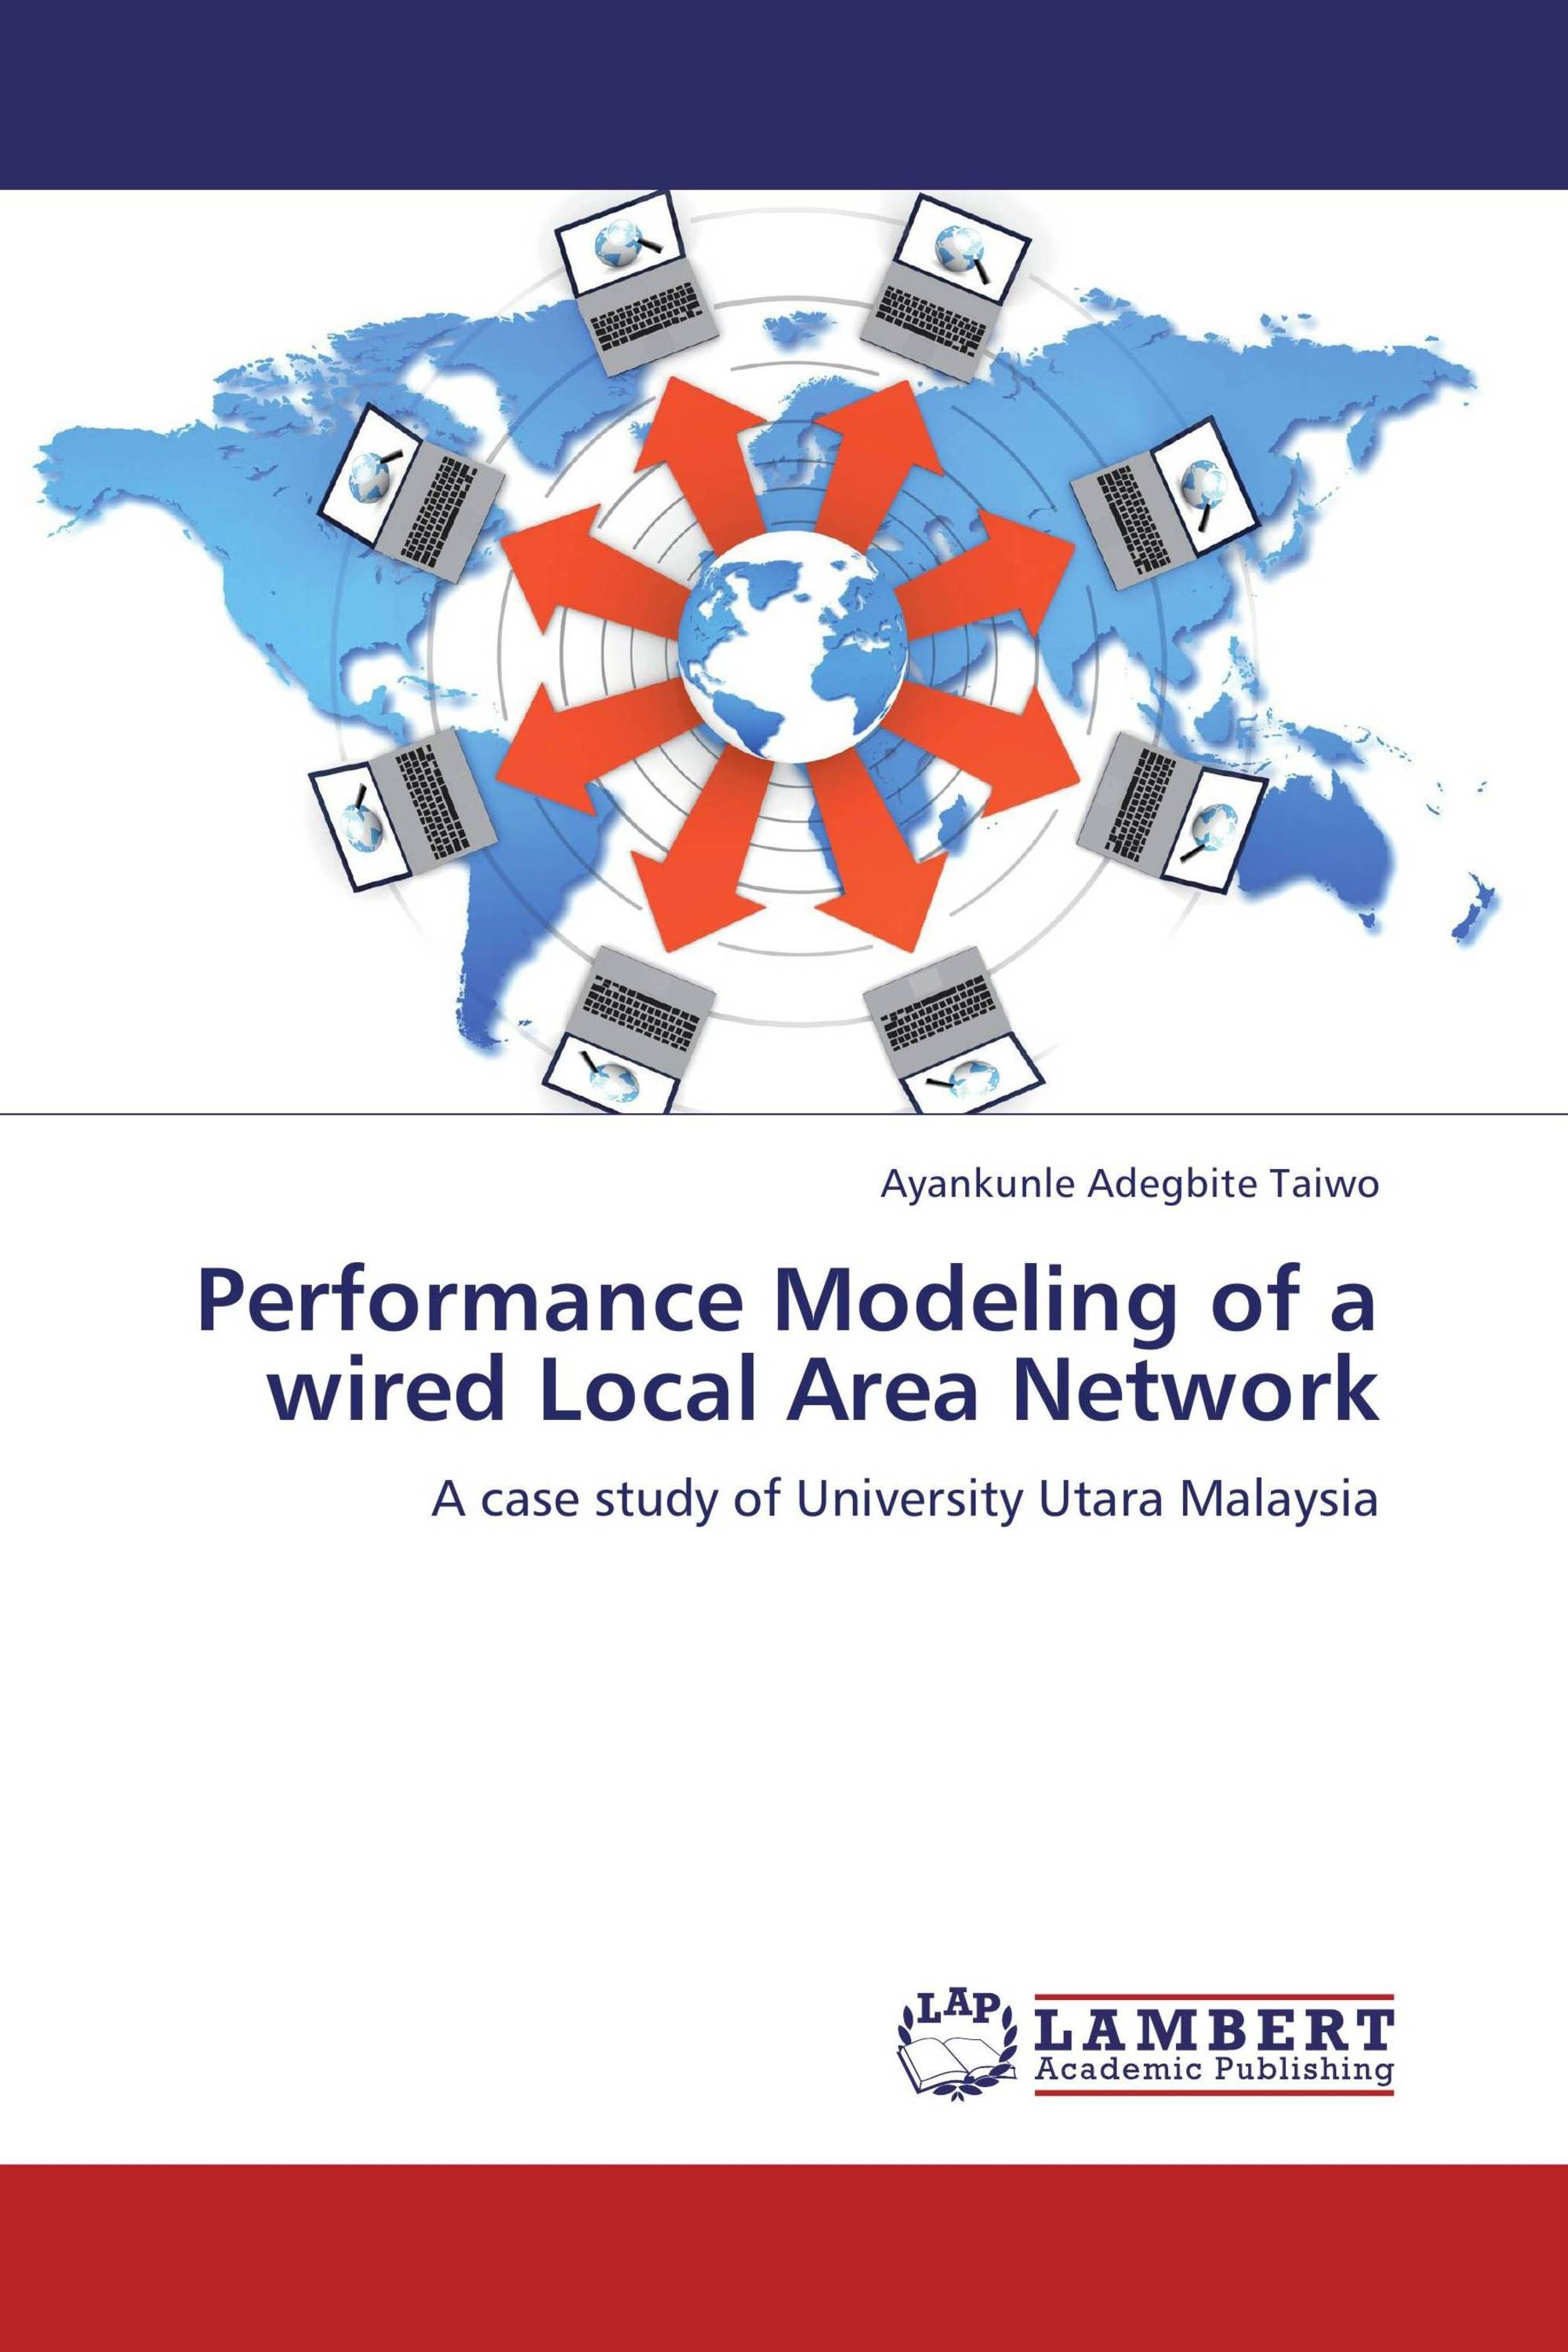 Performance Modeling of a wired Local Area Network